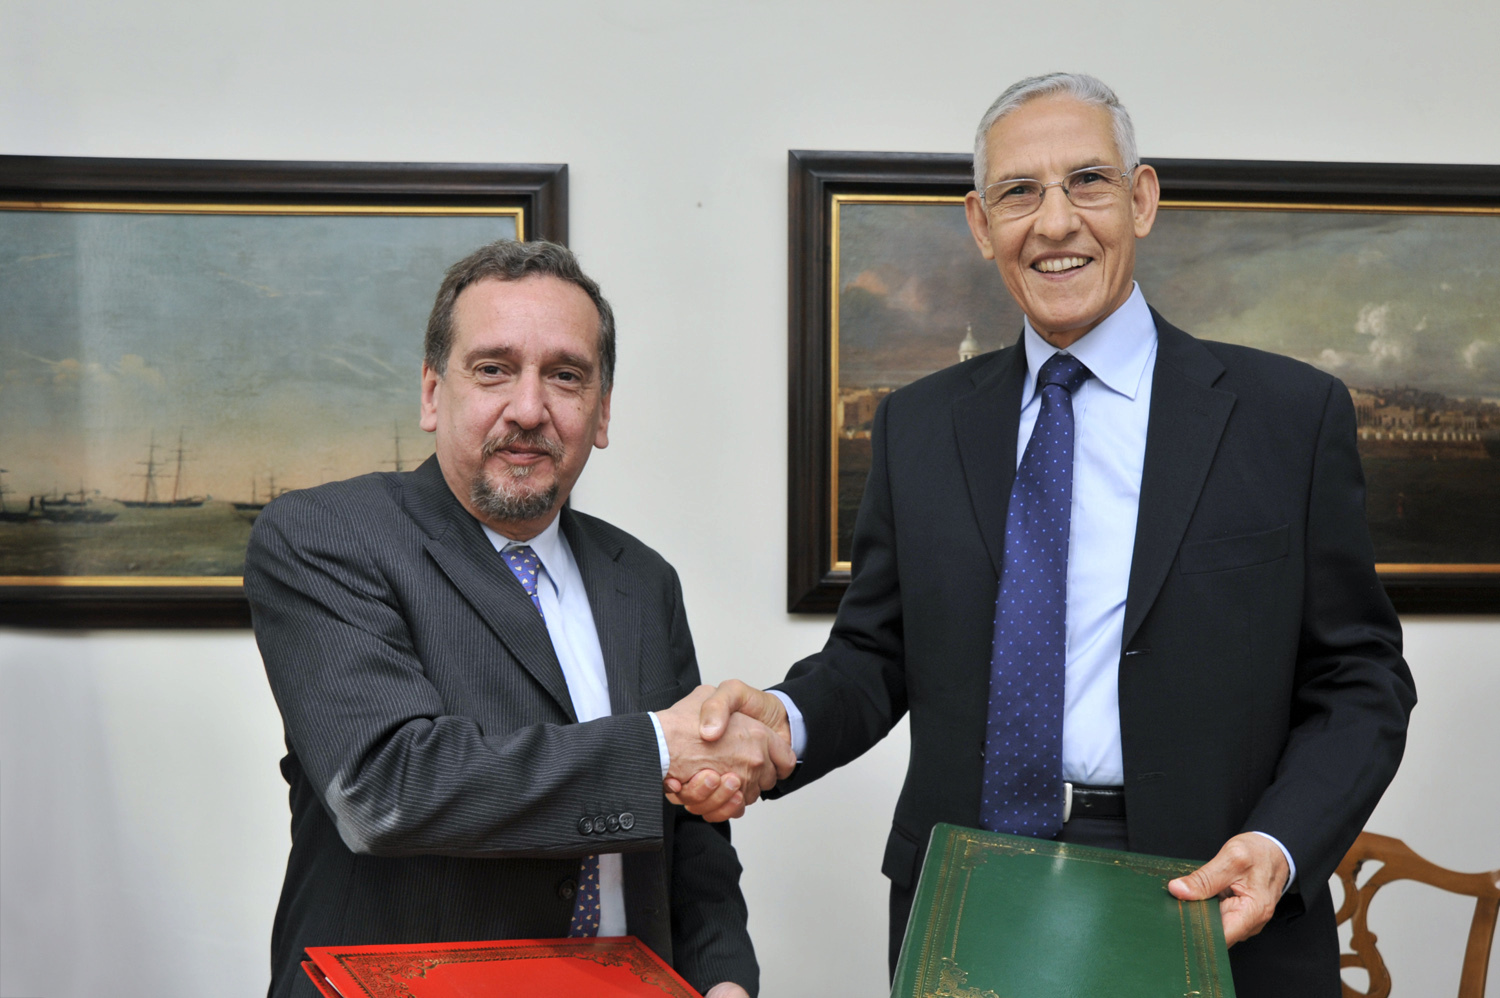 The Ministry of Science launches new financing projects for $120 million